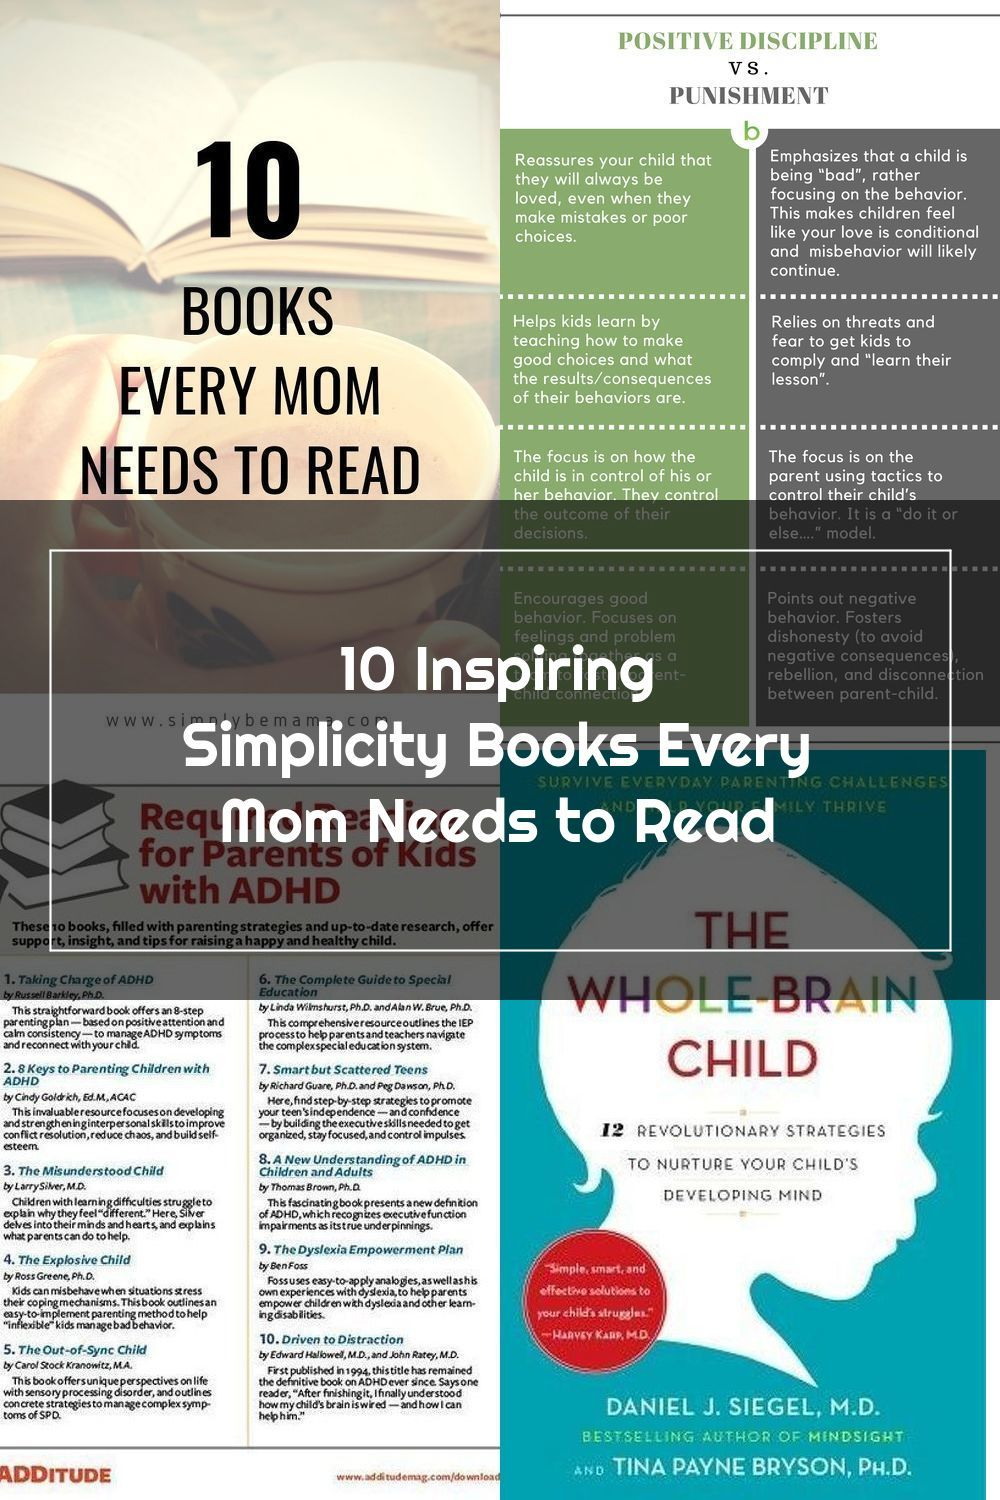 These 10 must-read books will change the way you look at life and motherhood.   Must-read books for moms   Must-read books for parents   Life-changing books   Books every mom needs to read   Reading list   Books for moms to read   #readinglist #mustreadbooks #mustreadbooksformoms #lifechangingbooks #goodreads #minimalistmotherhood #simplifymotherhood